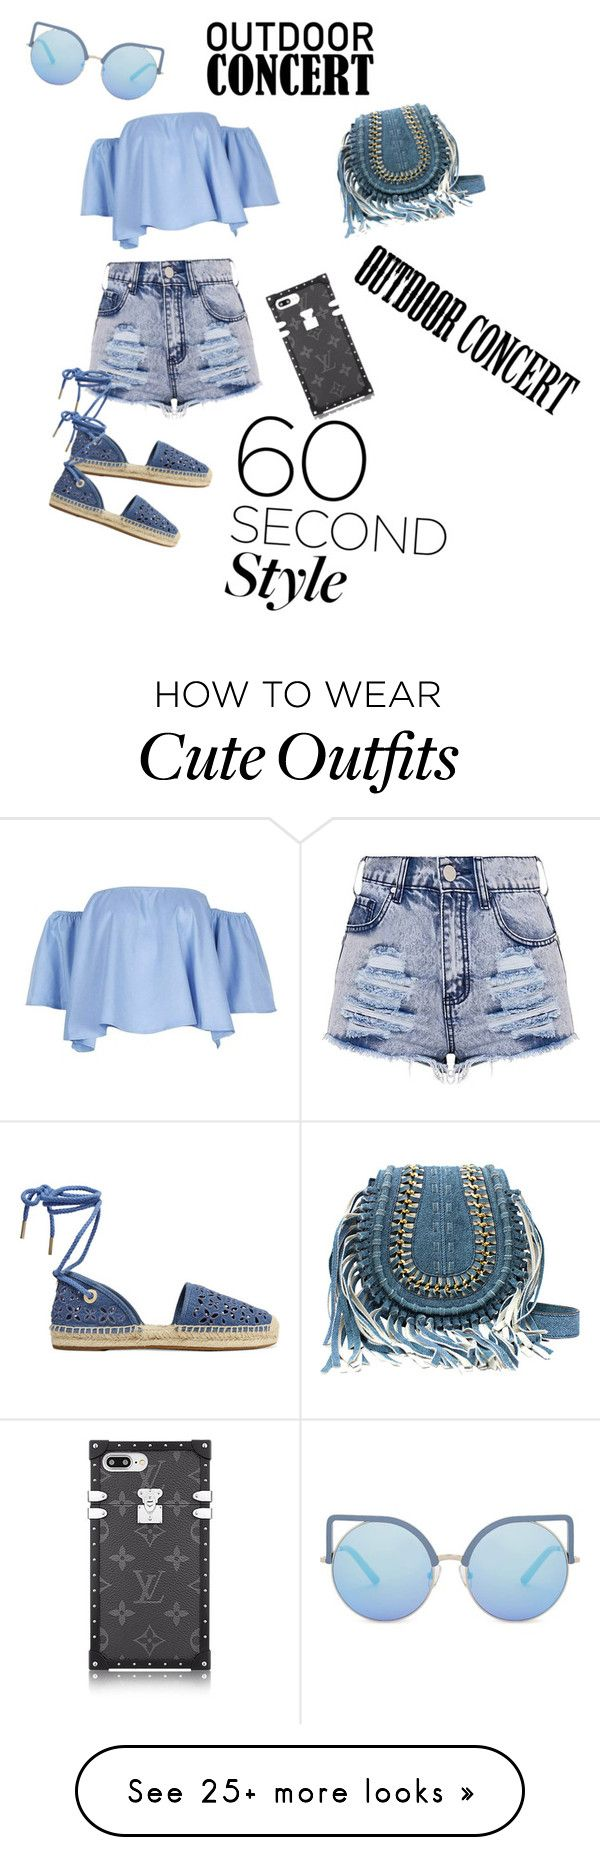 """Cute, classy easy to pick up outfit :)"" by julietteslife12 on Polyvore featuring MICHAEL Michael Kors, Matthew Williamson, 60secondstyle and outdoorconcerts"